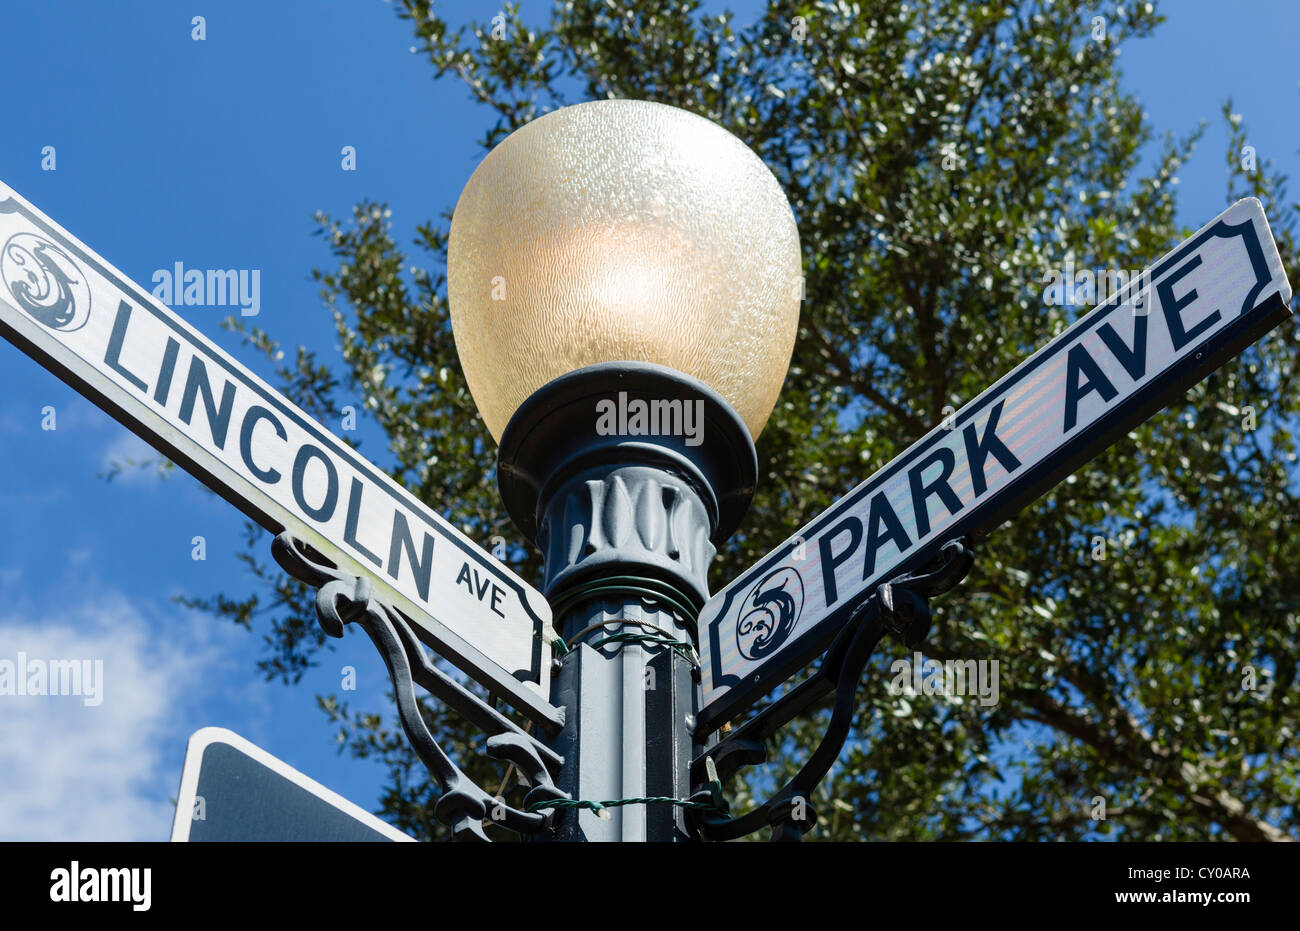 Street sign on Park Avenue (the main street), Winter Park, Central Florida, USA - Stock Image